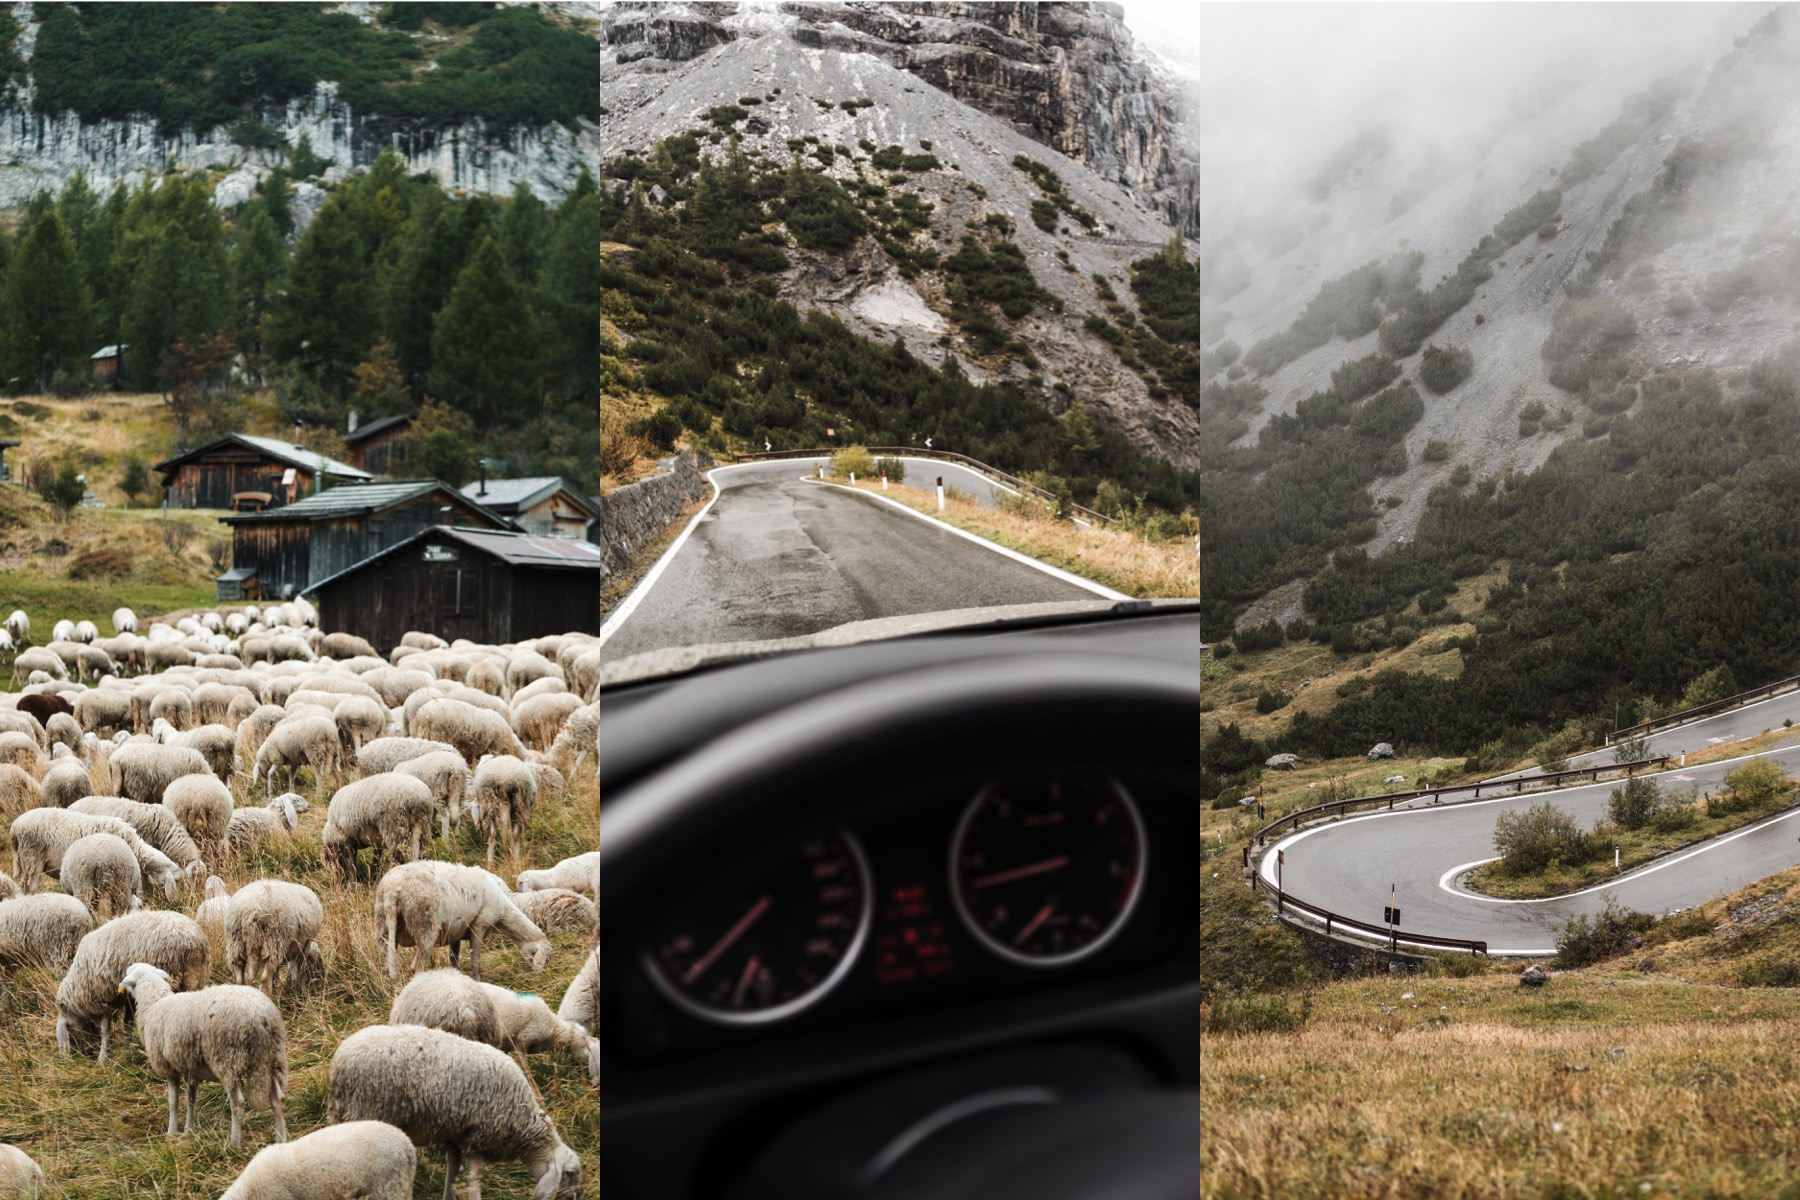 mountain sheeps stock photos stelvio road driving collection preview